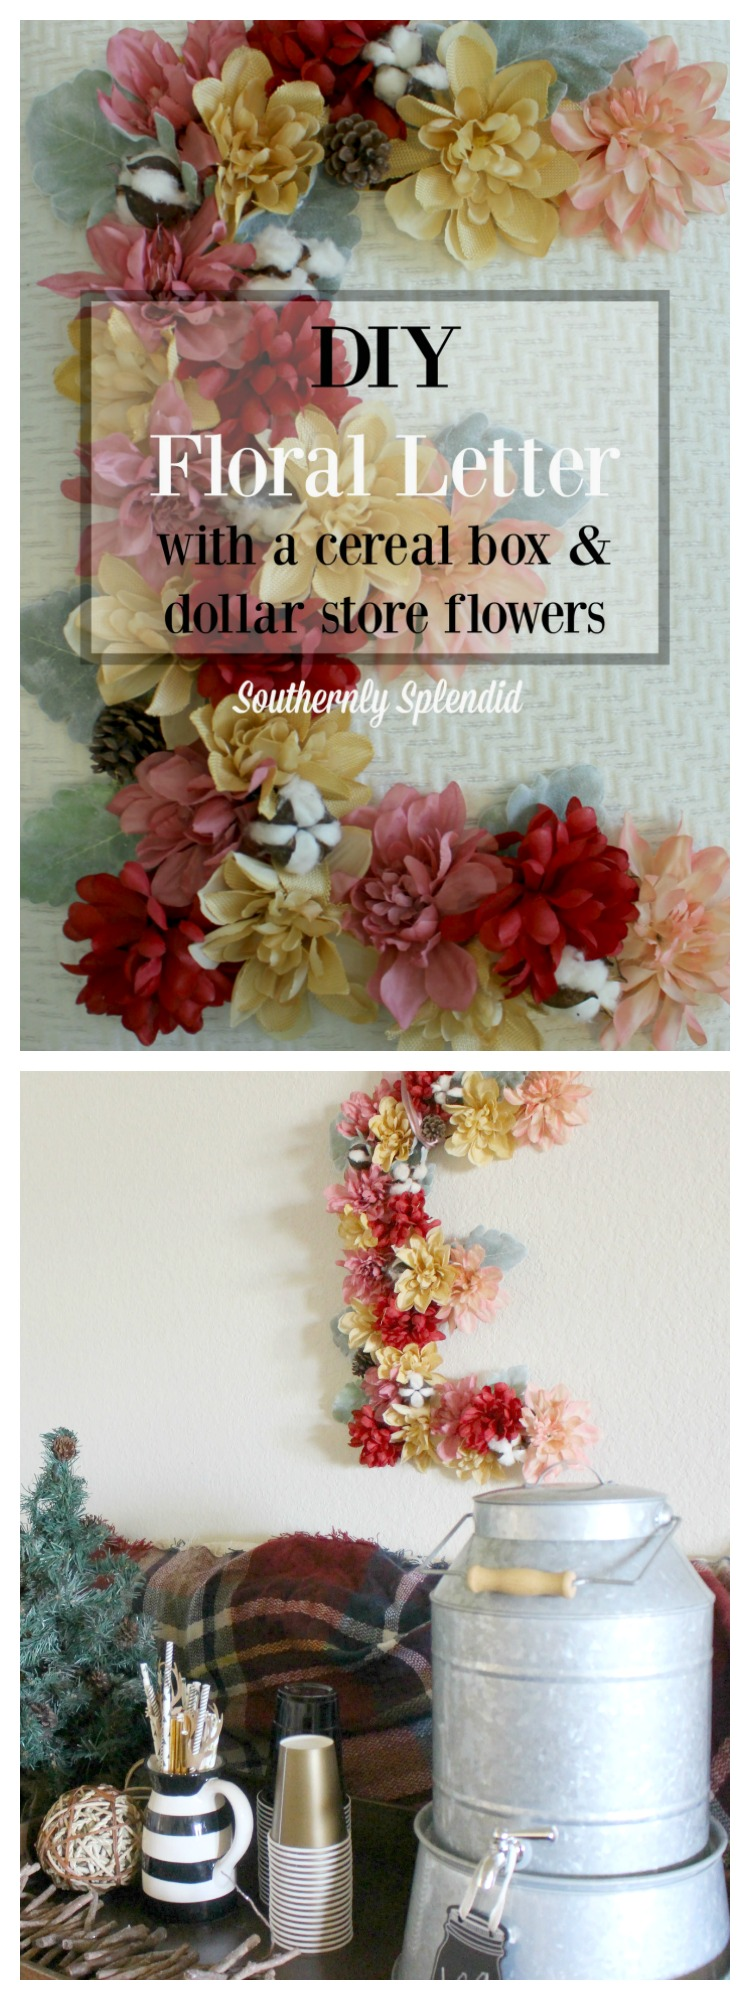 DIY Floral Letter from a Cereal Box & Dollar Tree Flowers! Great Decor for a Bedroom, Dorm Room, Nursery, Wedding, Mantel, Shower, Etc!